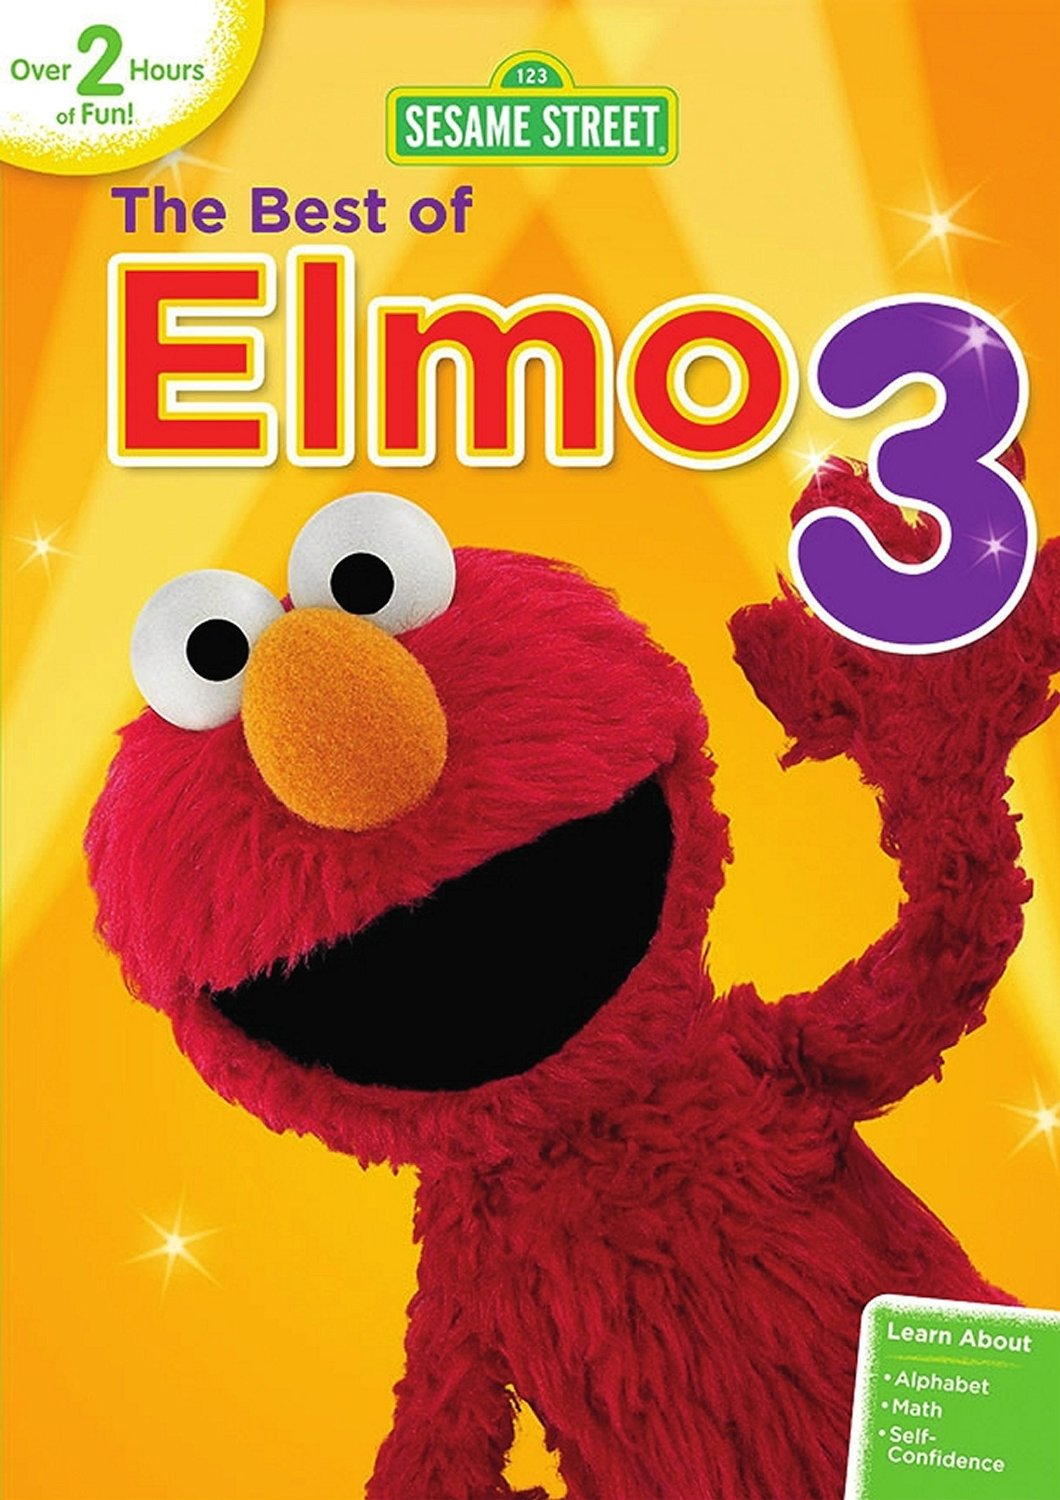 The best of elmo 3 muppet wiki fandom powered by wikia for Best of the best wiki